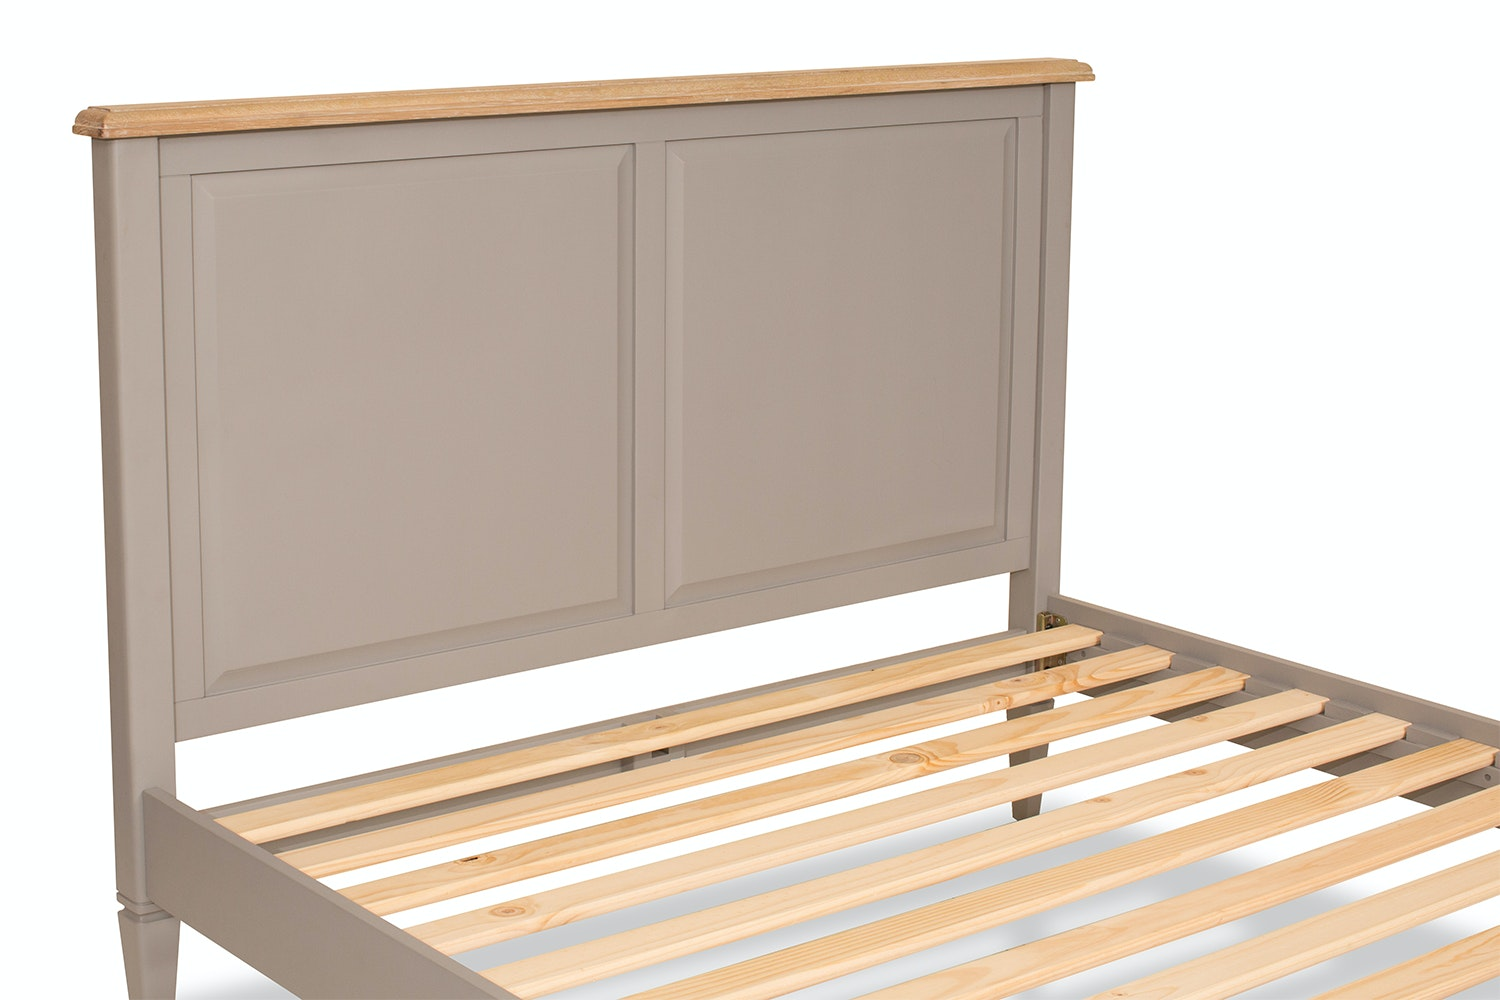 Windsor Bedframe | Flagstone&Oak | 6ft